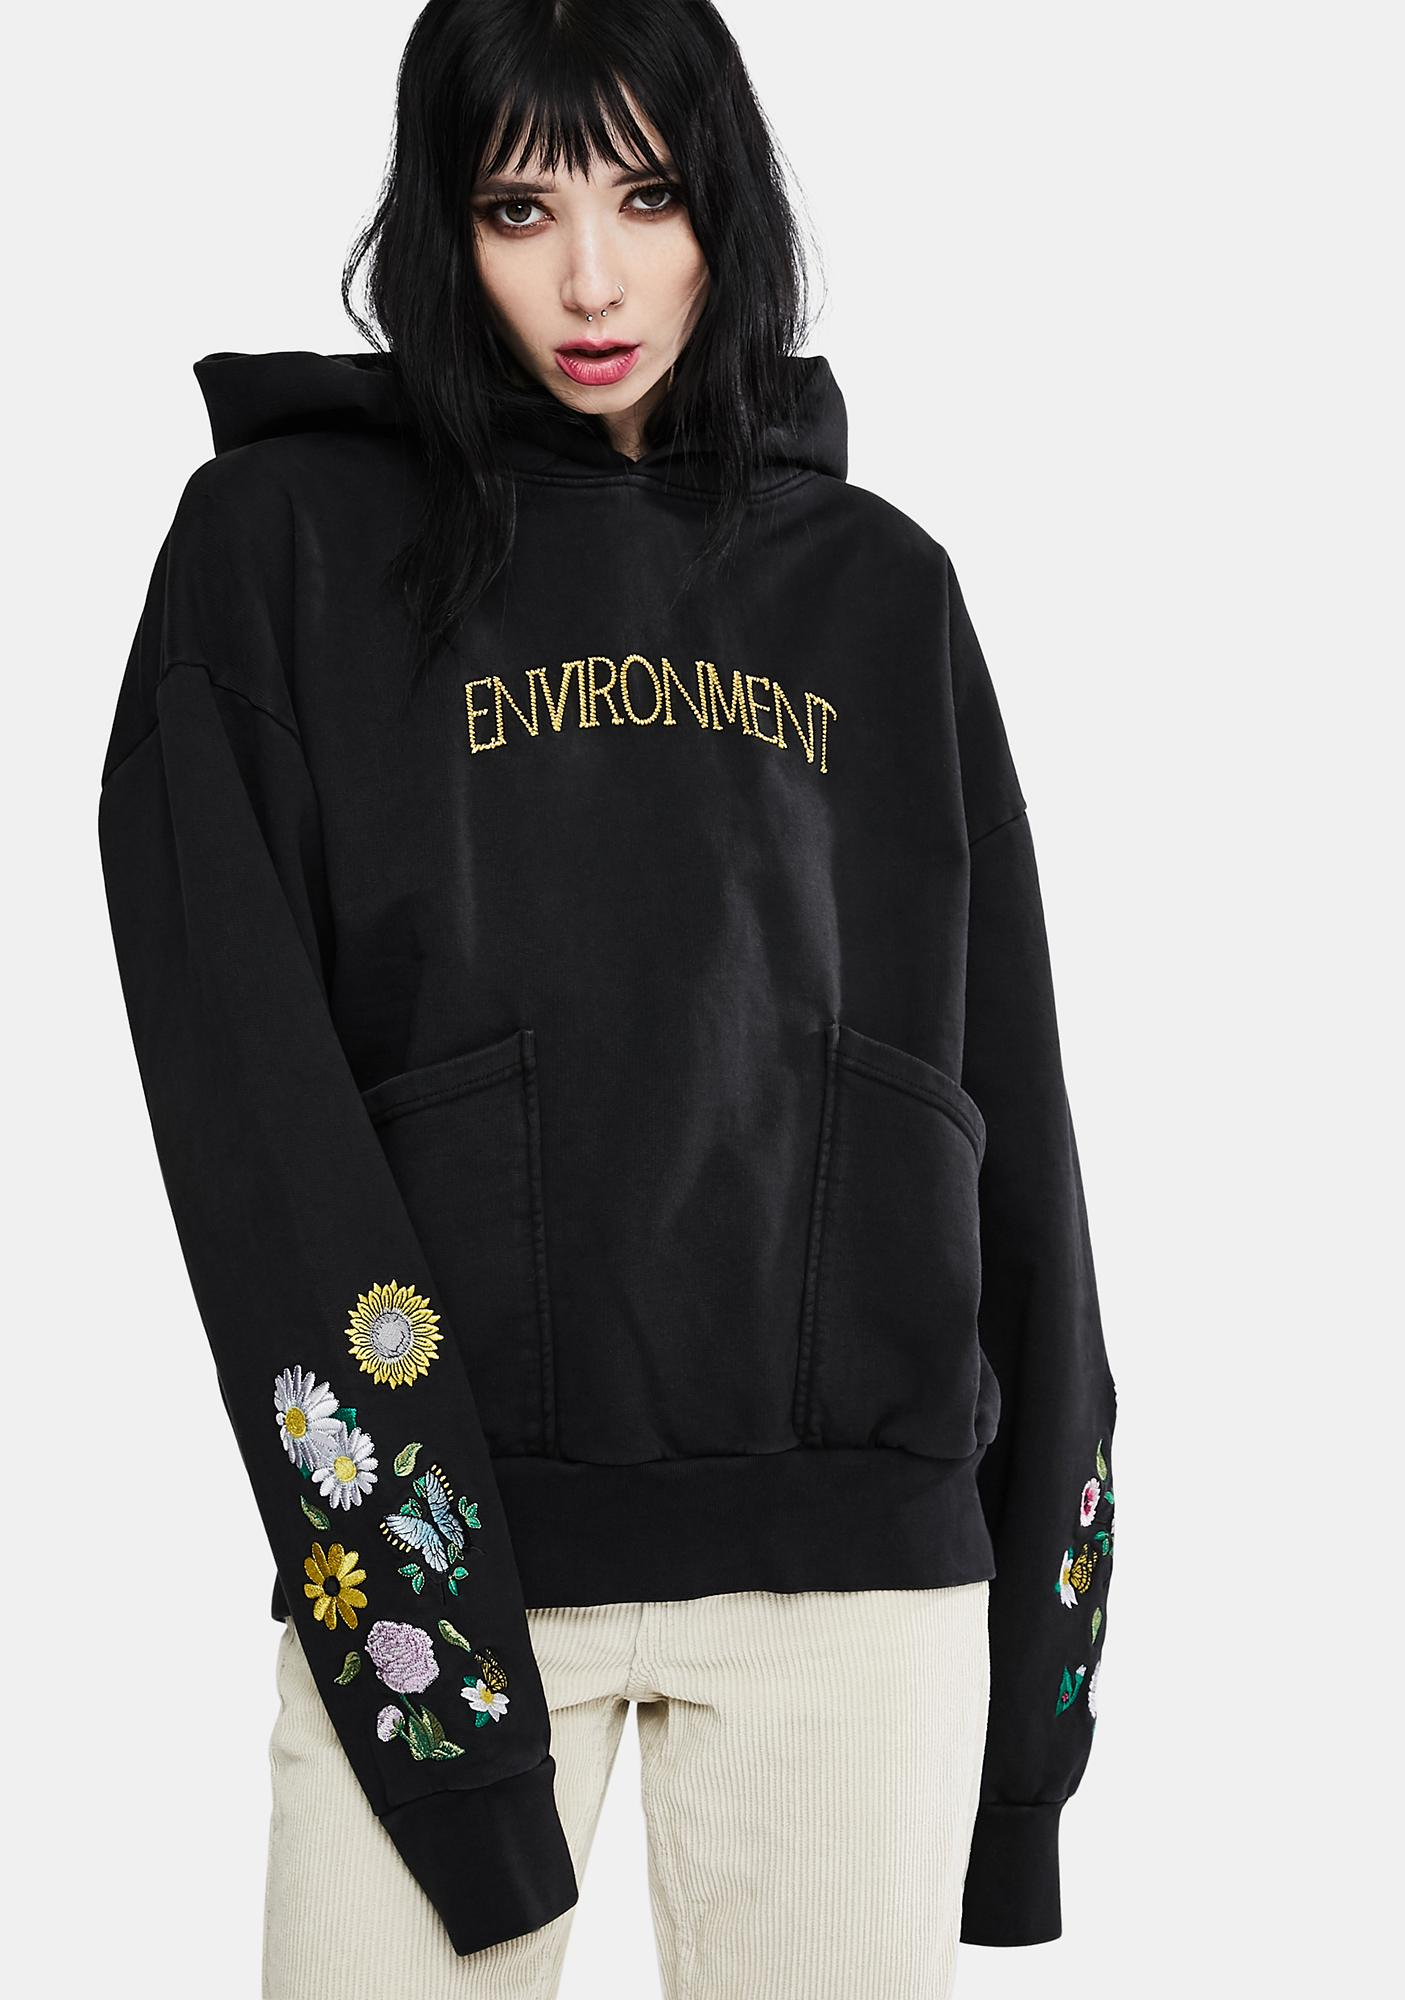 The Rad Black Kids Environment V2 Embroidered Hoodie